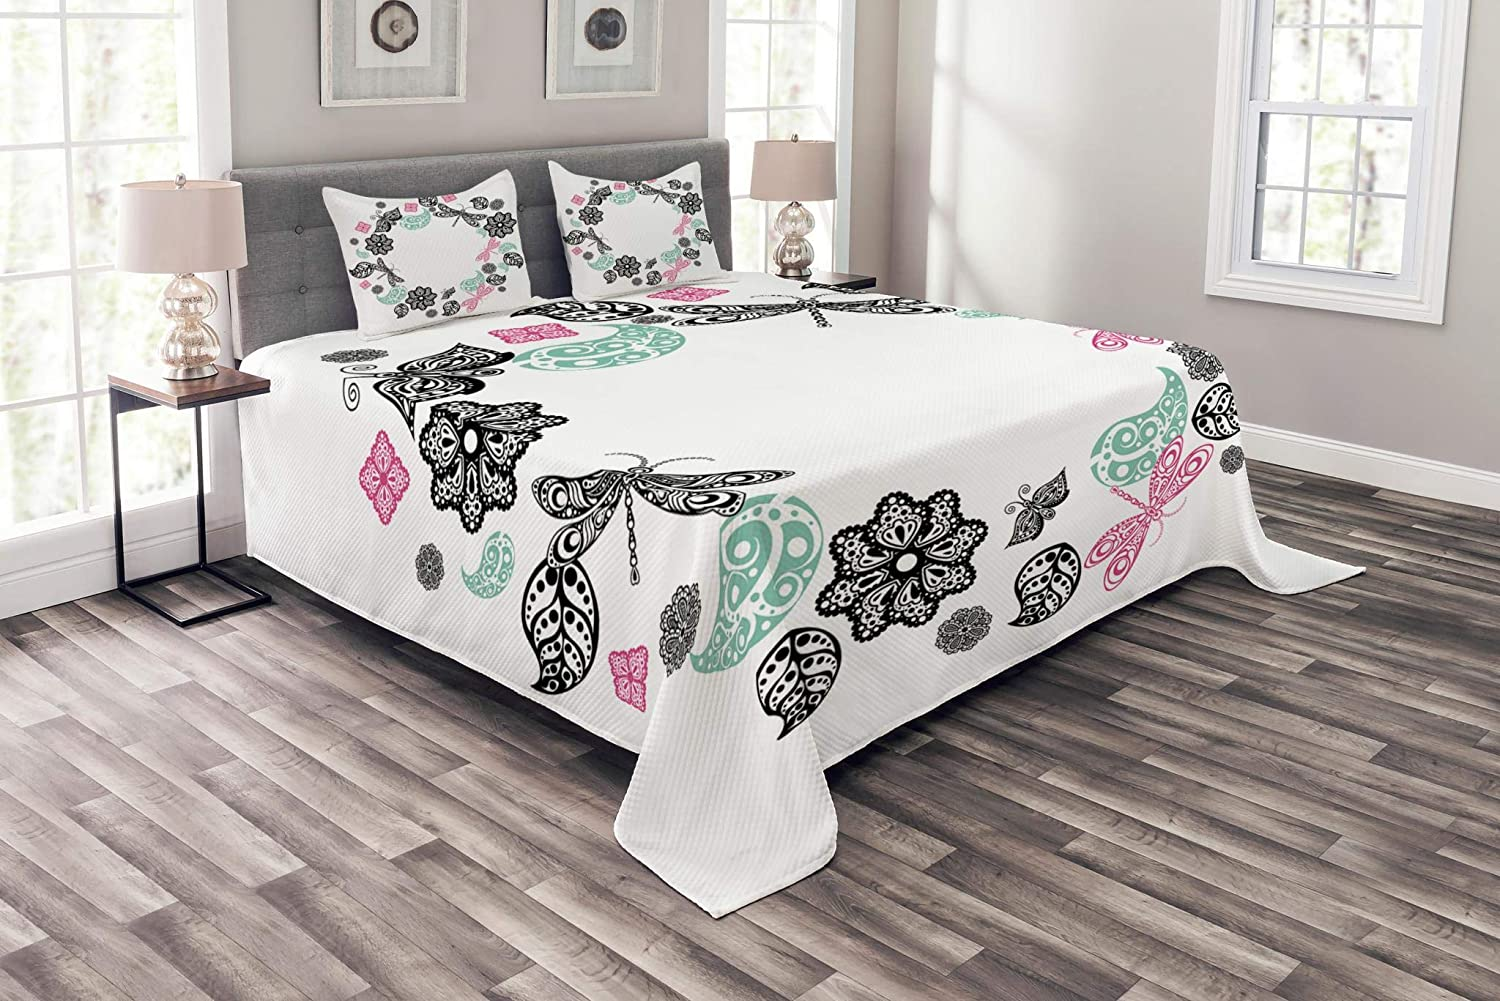 Blooming Flowers Leaves Berries and Butterflies Pastel Brown Multicolor Twin Size Soft Comfortable Top Sheet Decorative Bedding 1 Piece Lunarable Floral Flat Sheet